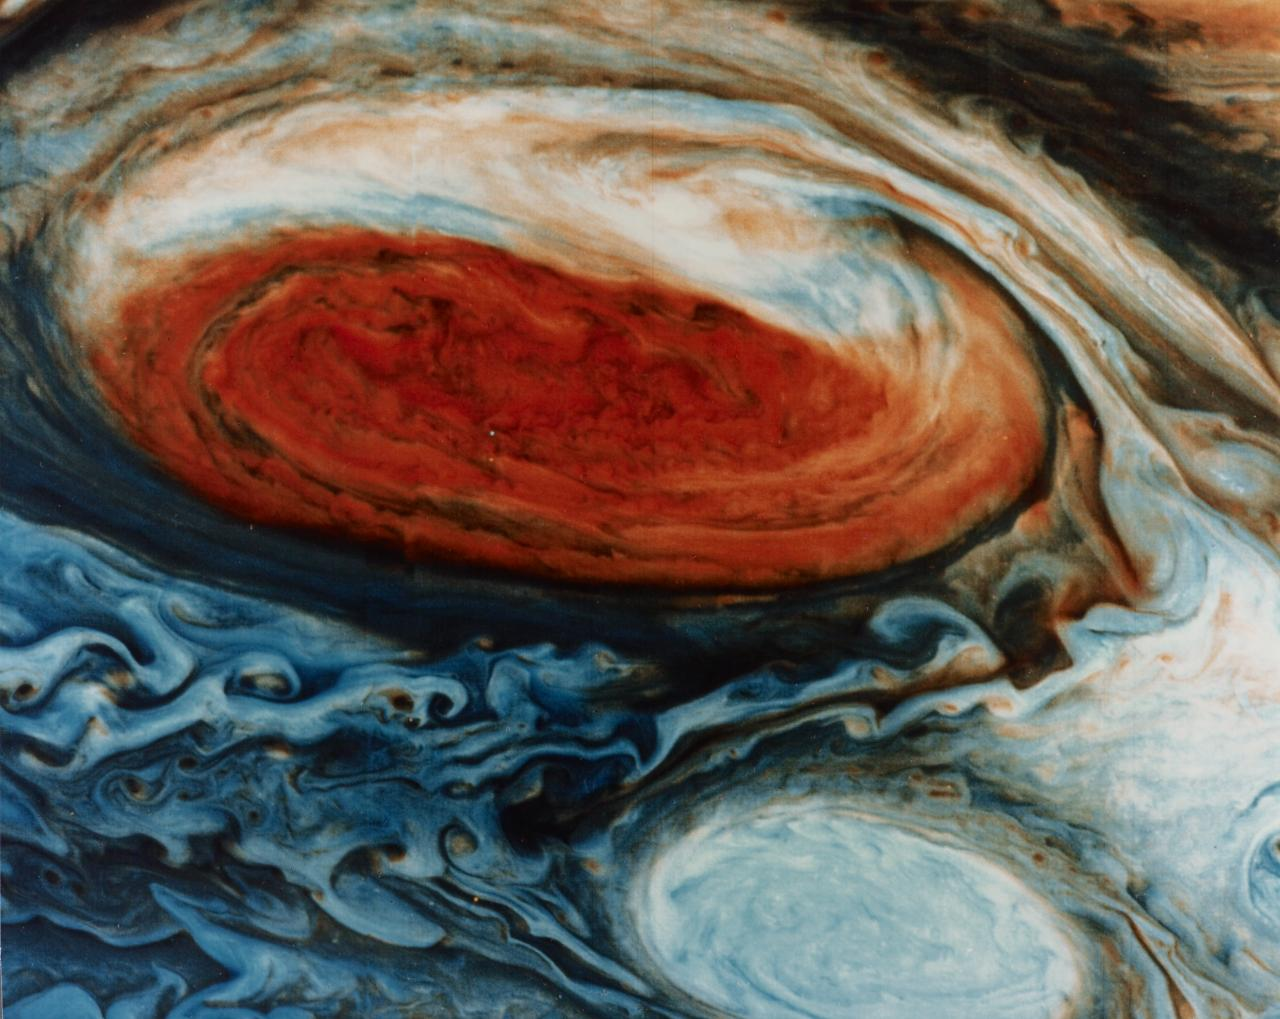 Jupiter. Great Red Spot with white oval in its wake. Voyager 1